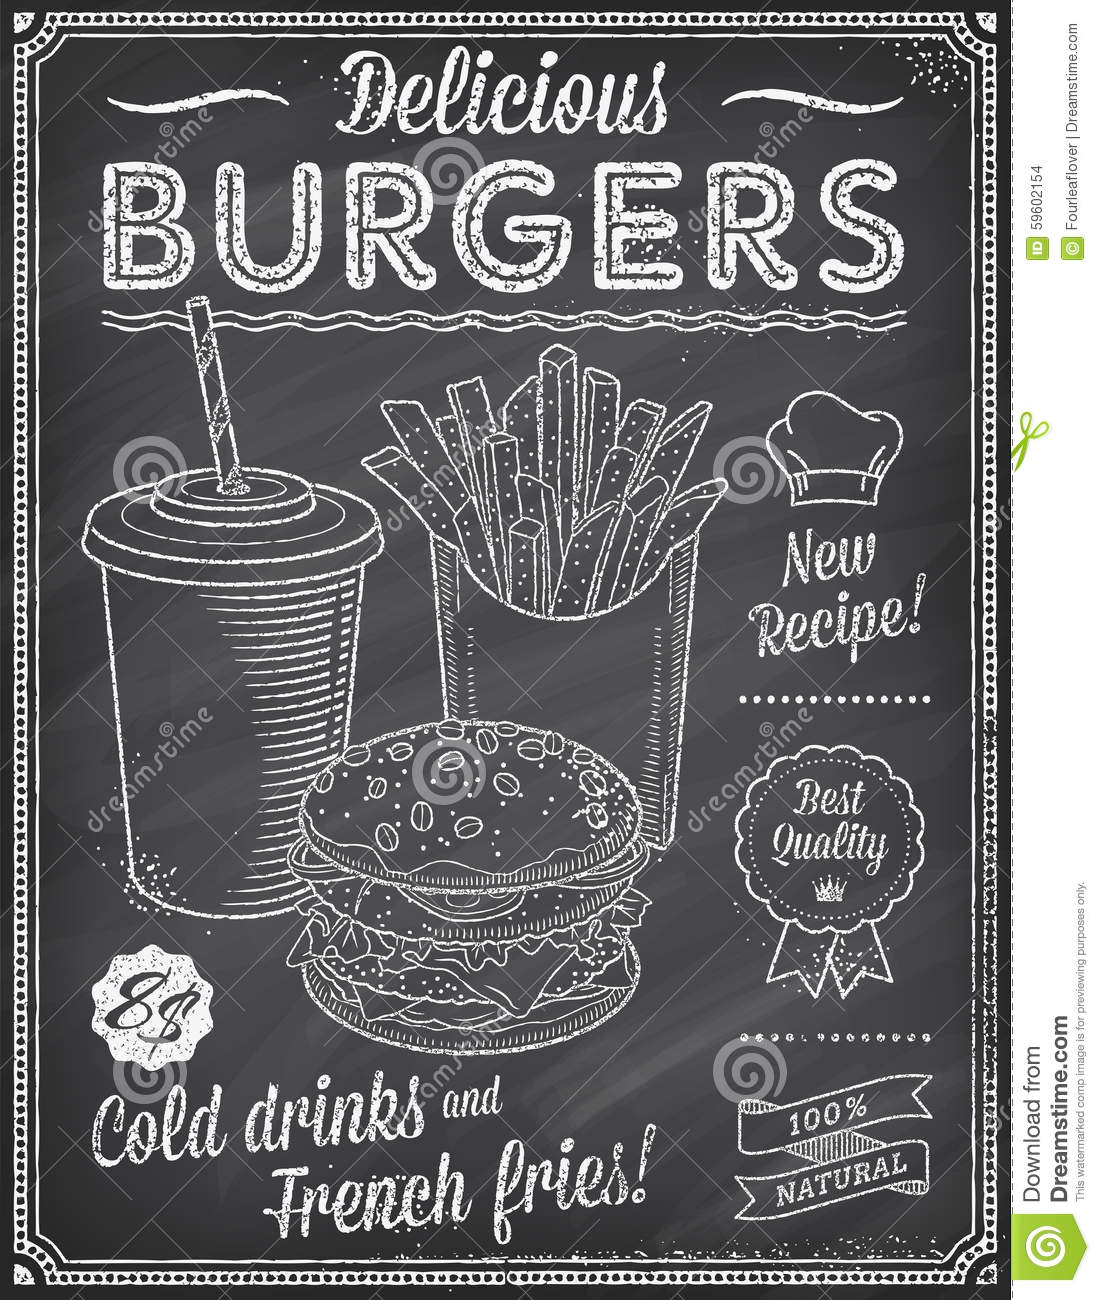 Grunge Chalkboard Fast Food Menu Template 4 Stock